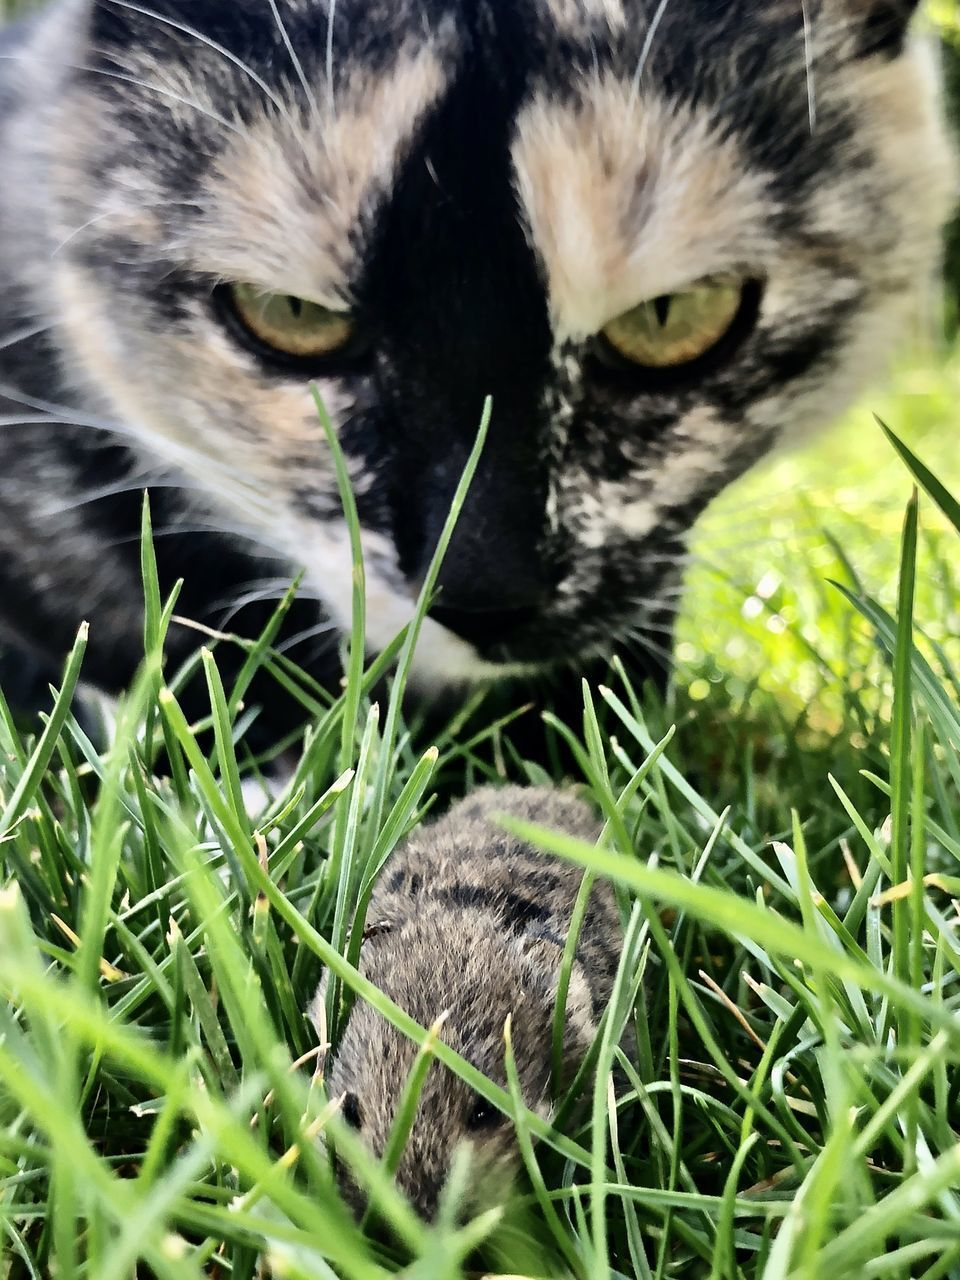 CLOSE-UP OF CAT ON GRASS